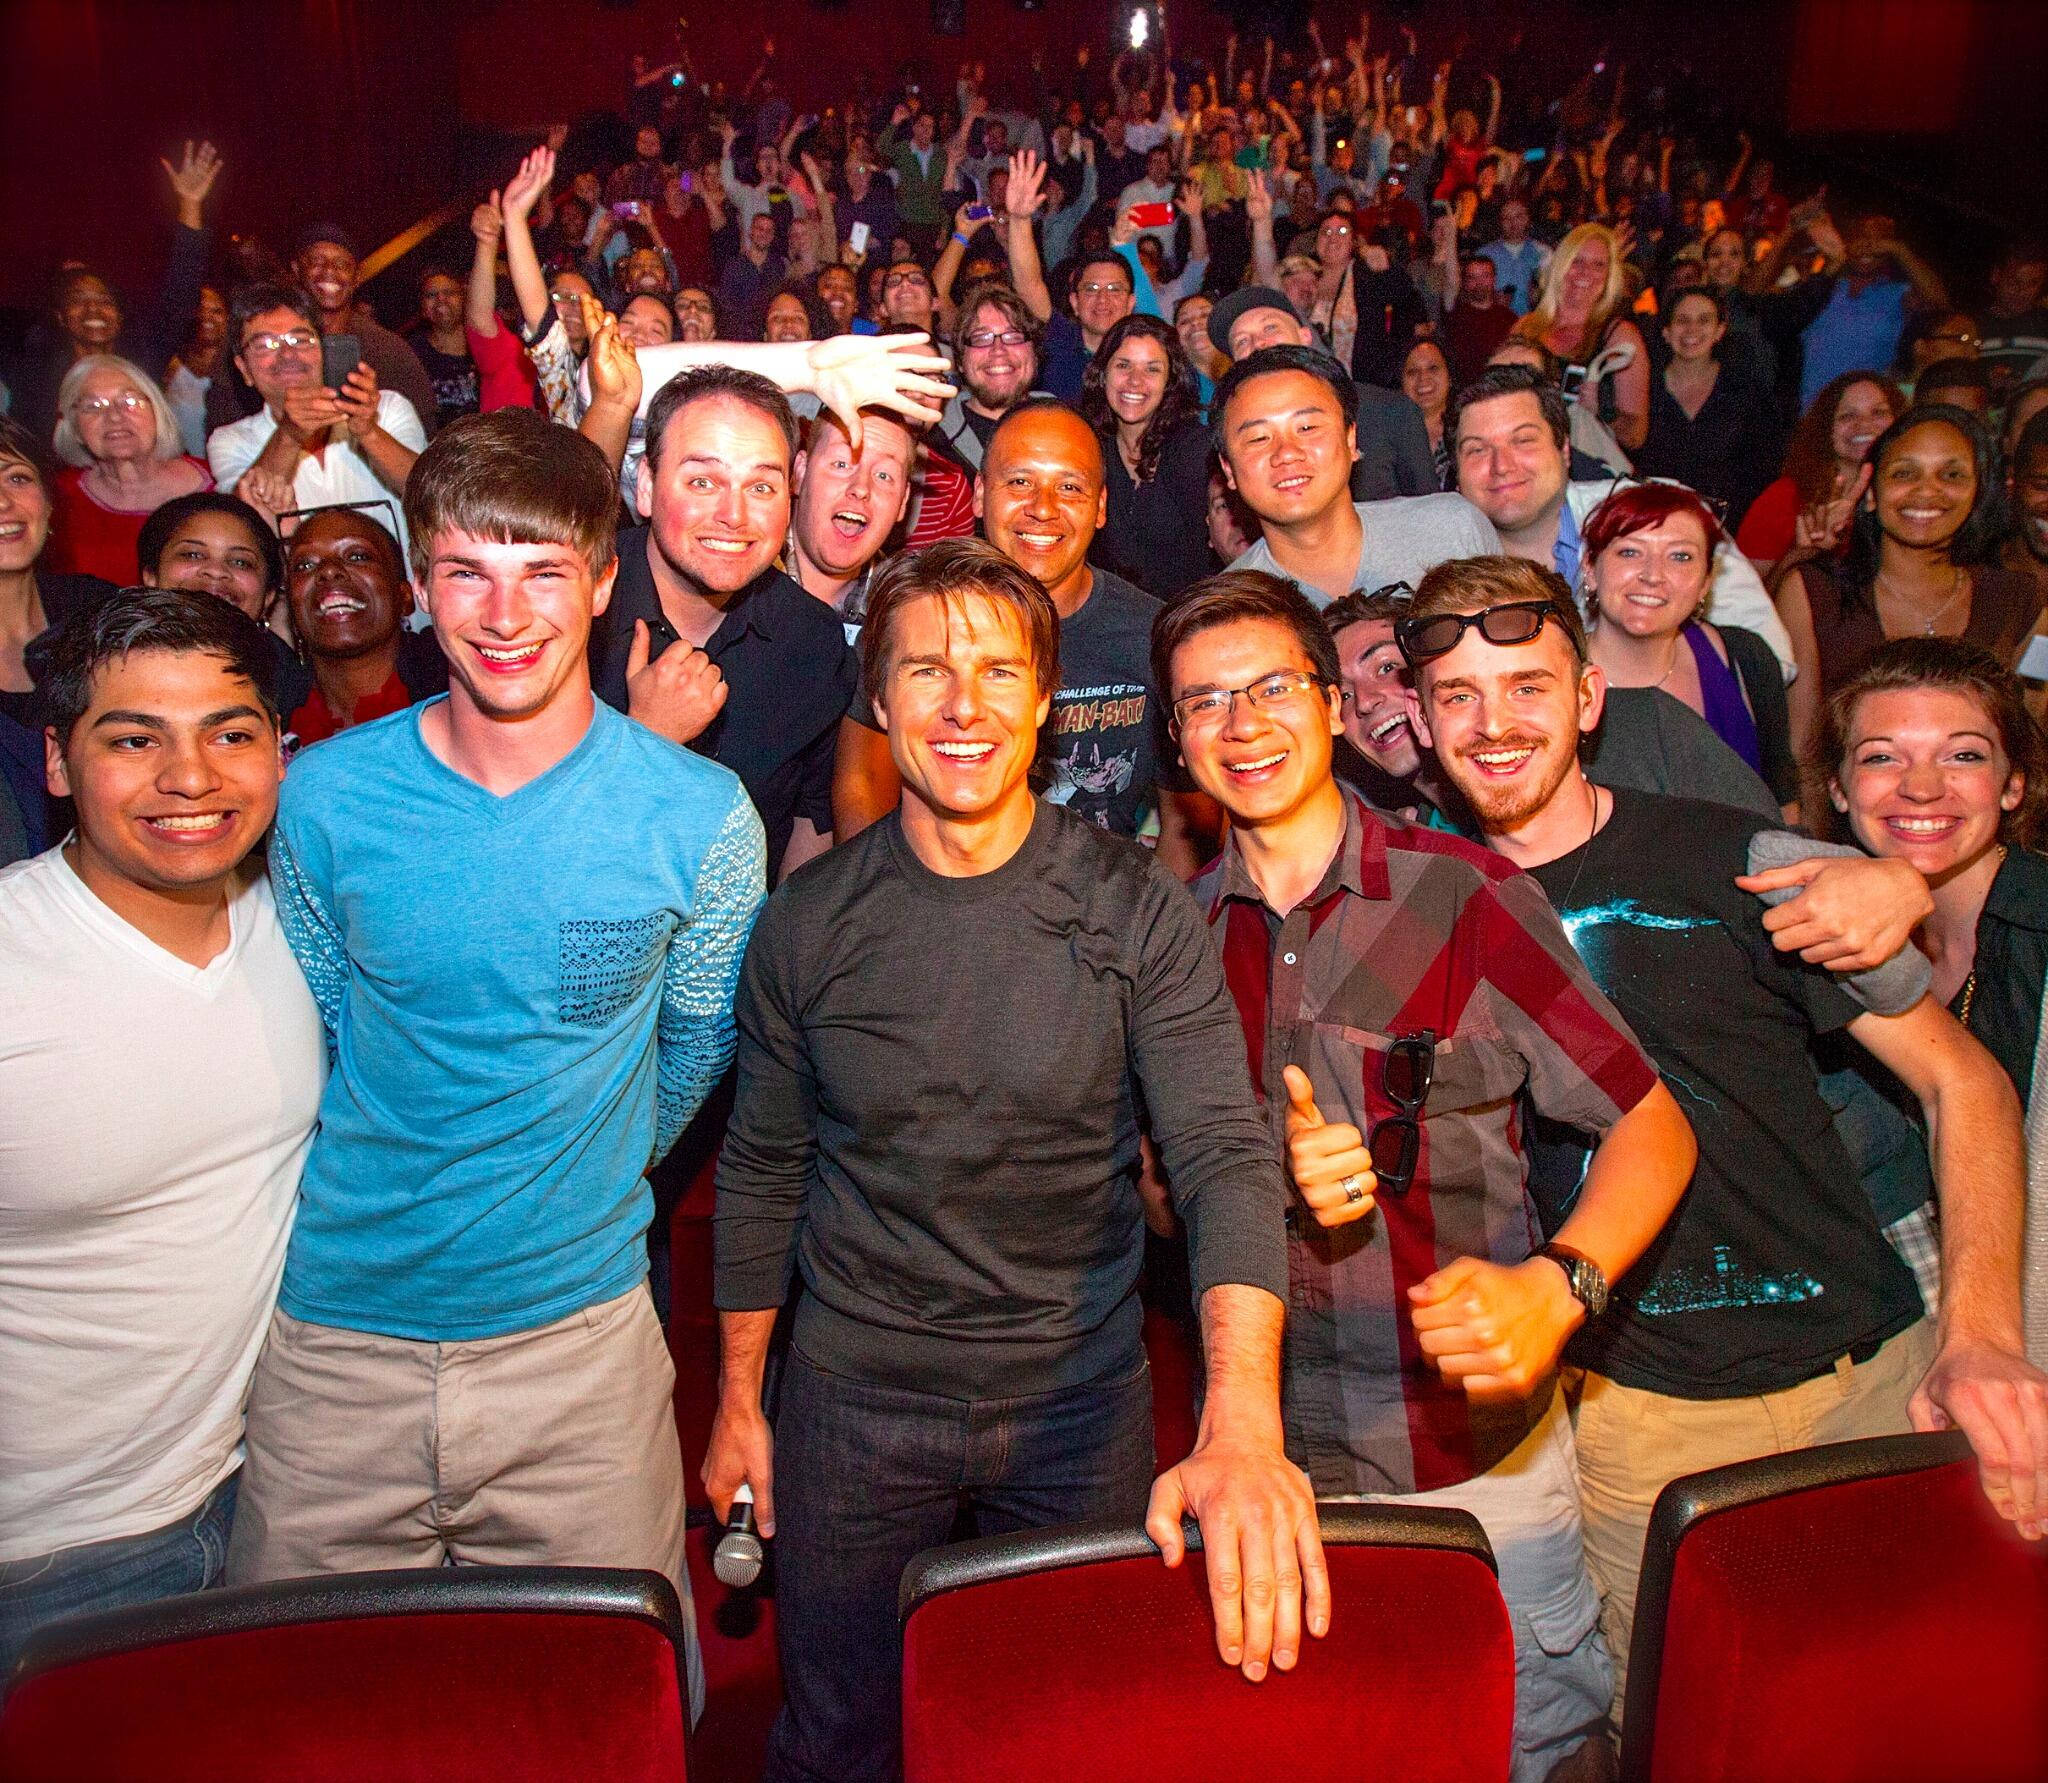 Twitter / TomCruise: So much energy in the theater ...